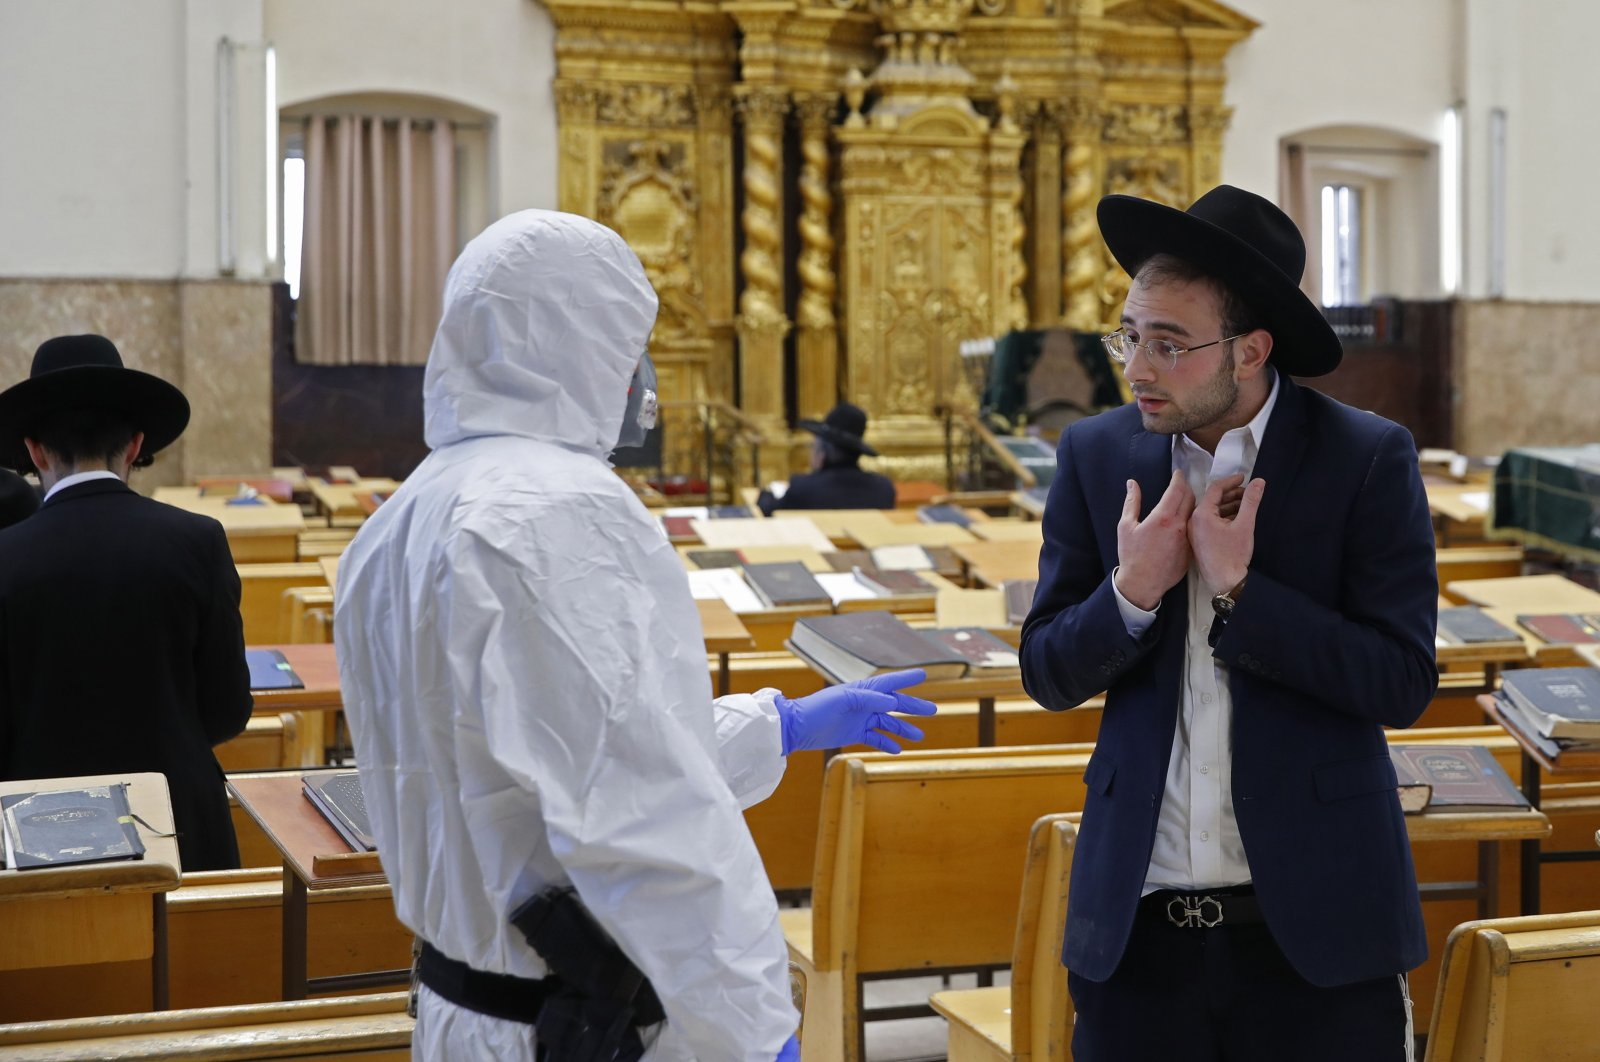 An Israeli police officer, dressed in a protective outfit, speaks to a Yeshiva (Jewish educational institution for studies of traditional religious texts) student, in the Israeli city of Bnei Brak on Thursday, April 2, 2020, during a control to enforce social distancing measures imposed by Israeli authorities to curb the spread of the novel coronavirus. (AFP Photo)